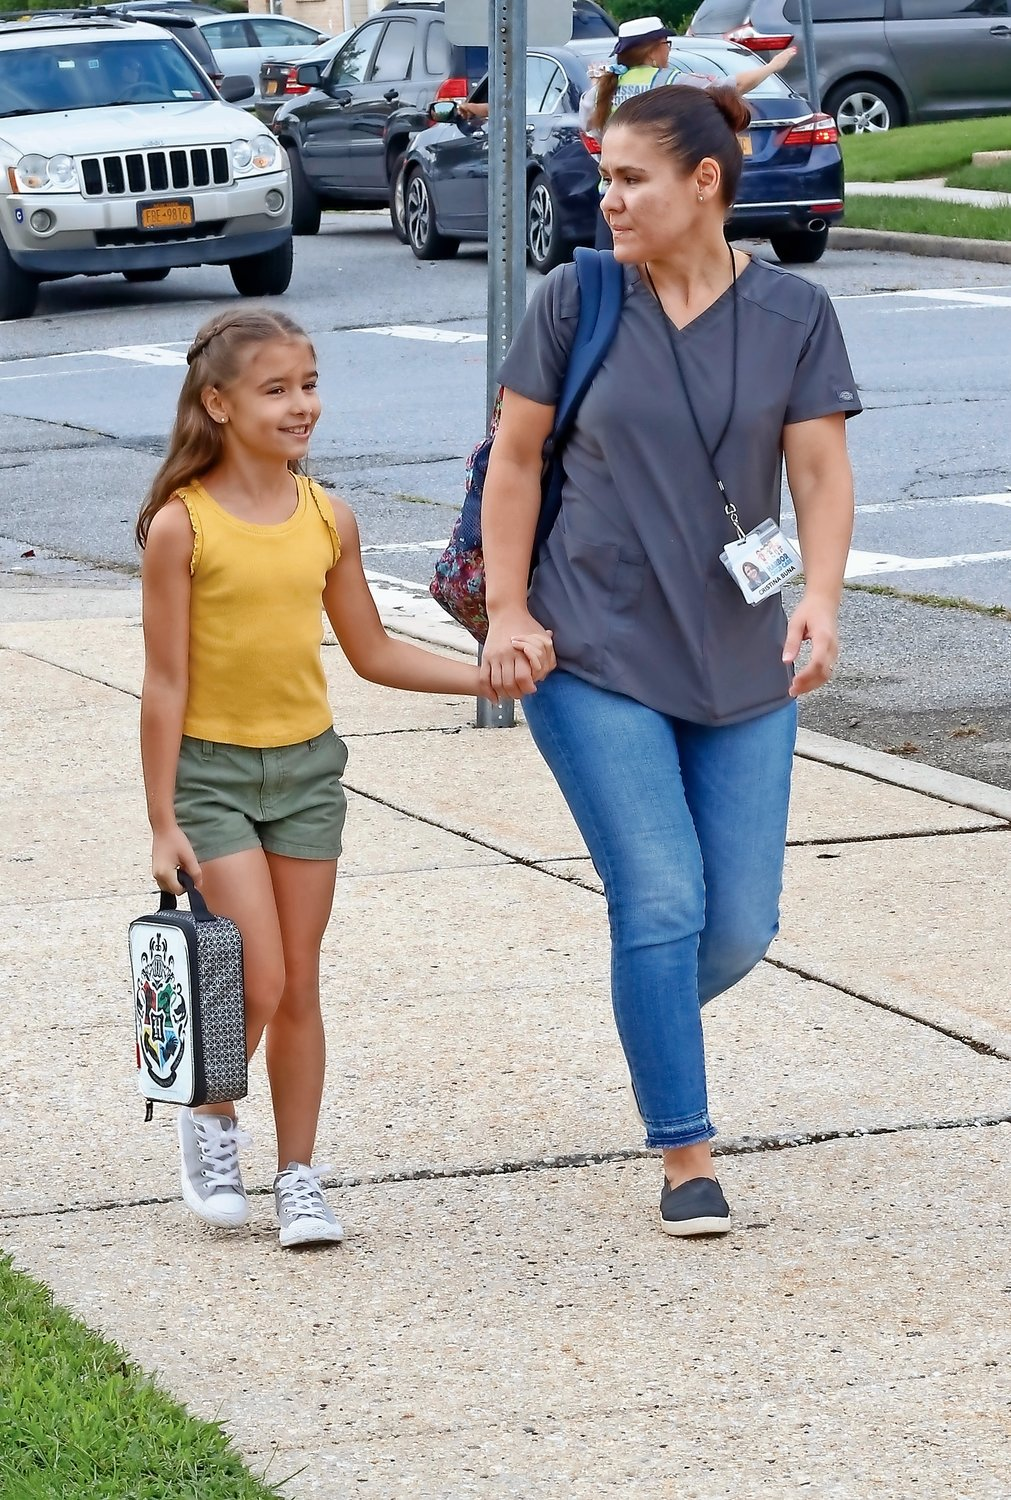 Second-grade student Lyvia Gonzalez, top right, walked to Washington Street with her mom Christina.